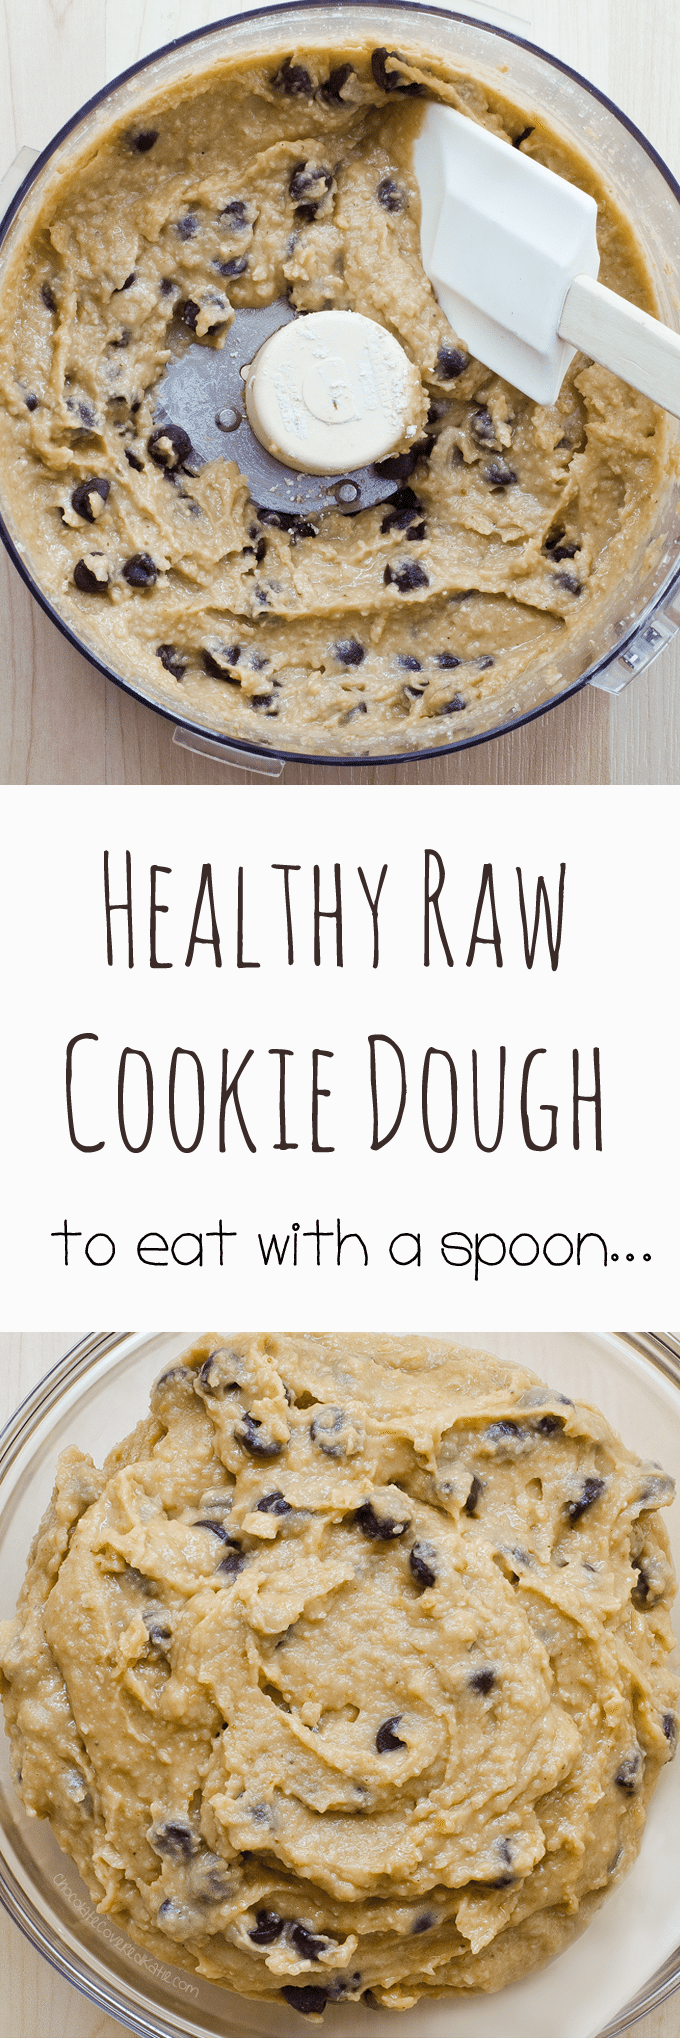 Raw Cookie Dough - Ingredients: 1/2 cup quick oats, 1/3 cup chocolate chips, 2 tsp vanilla extract, 1/4 cup ... Full recipe: https://chocolatecoveredkatie.com/2016/07/11/raw-cookie-dough-recipe/